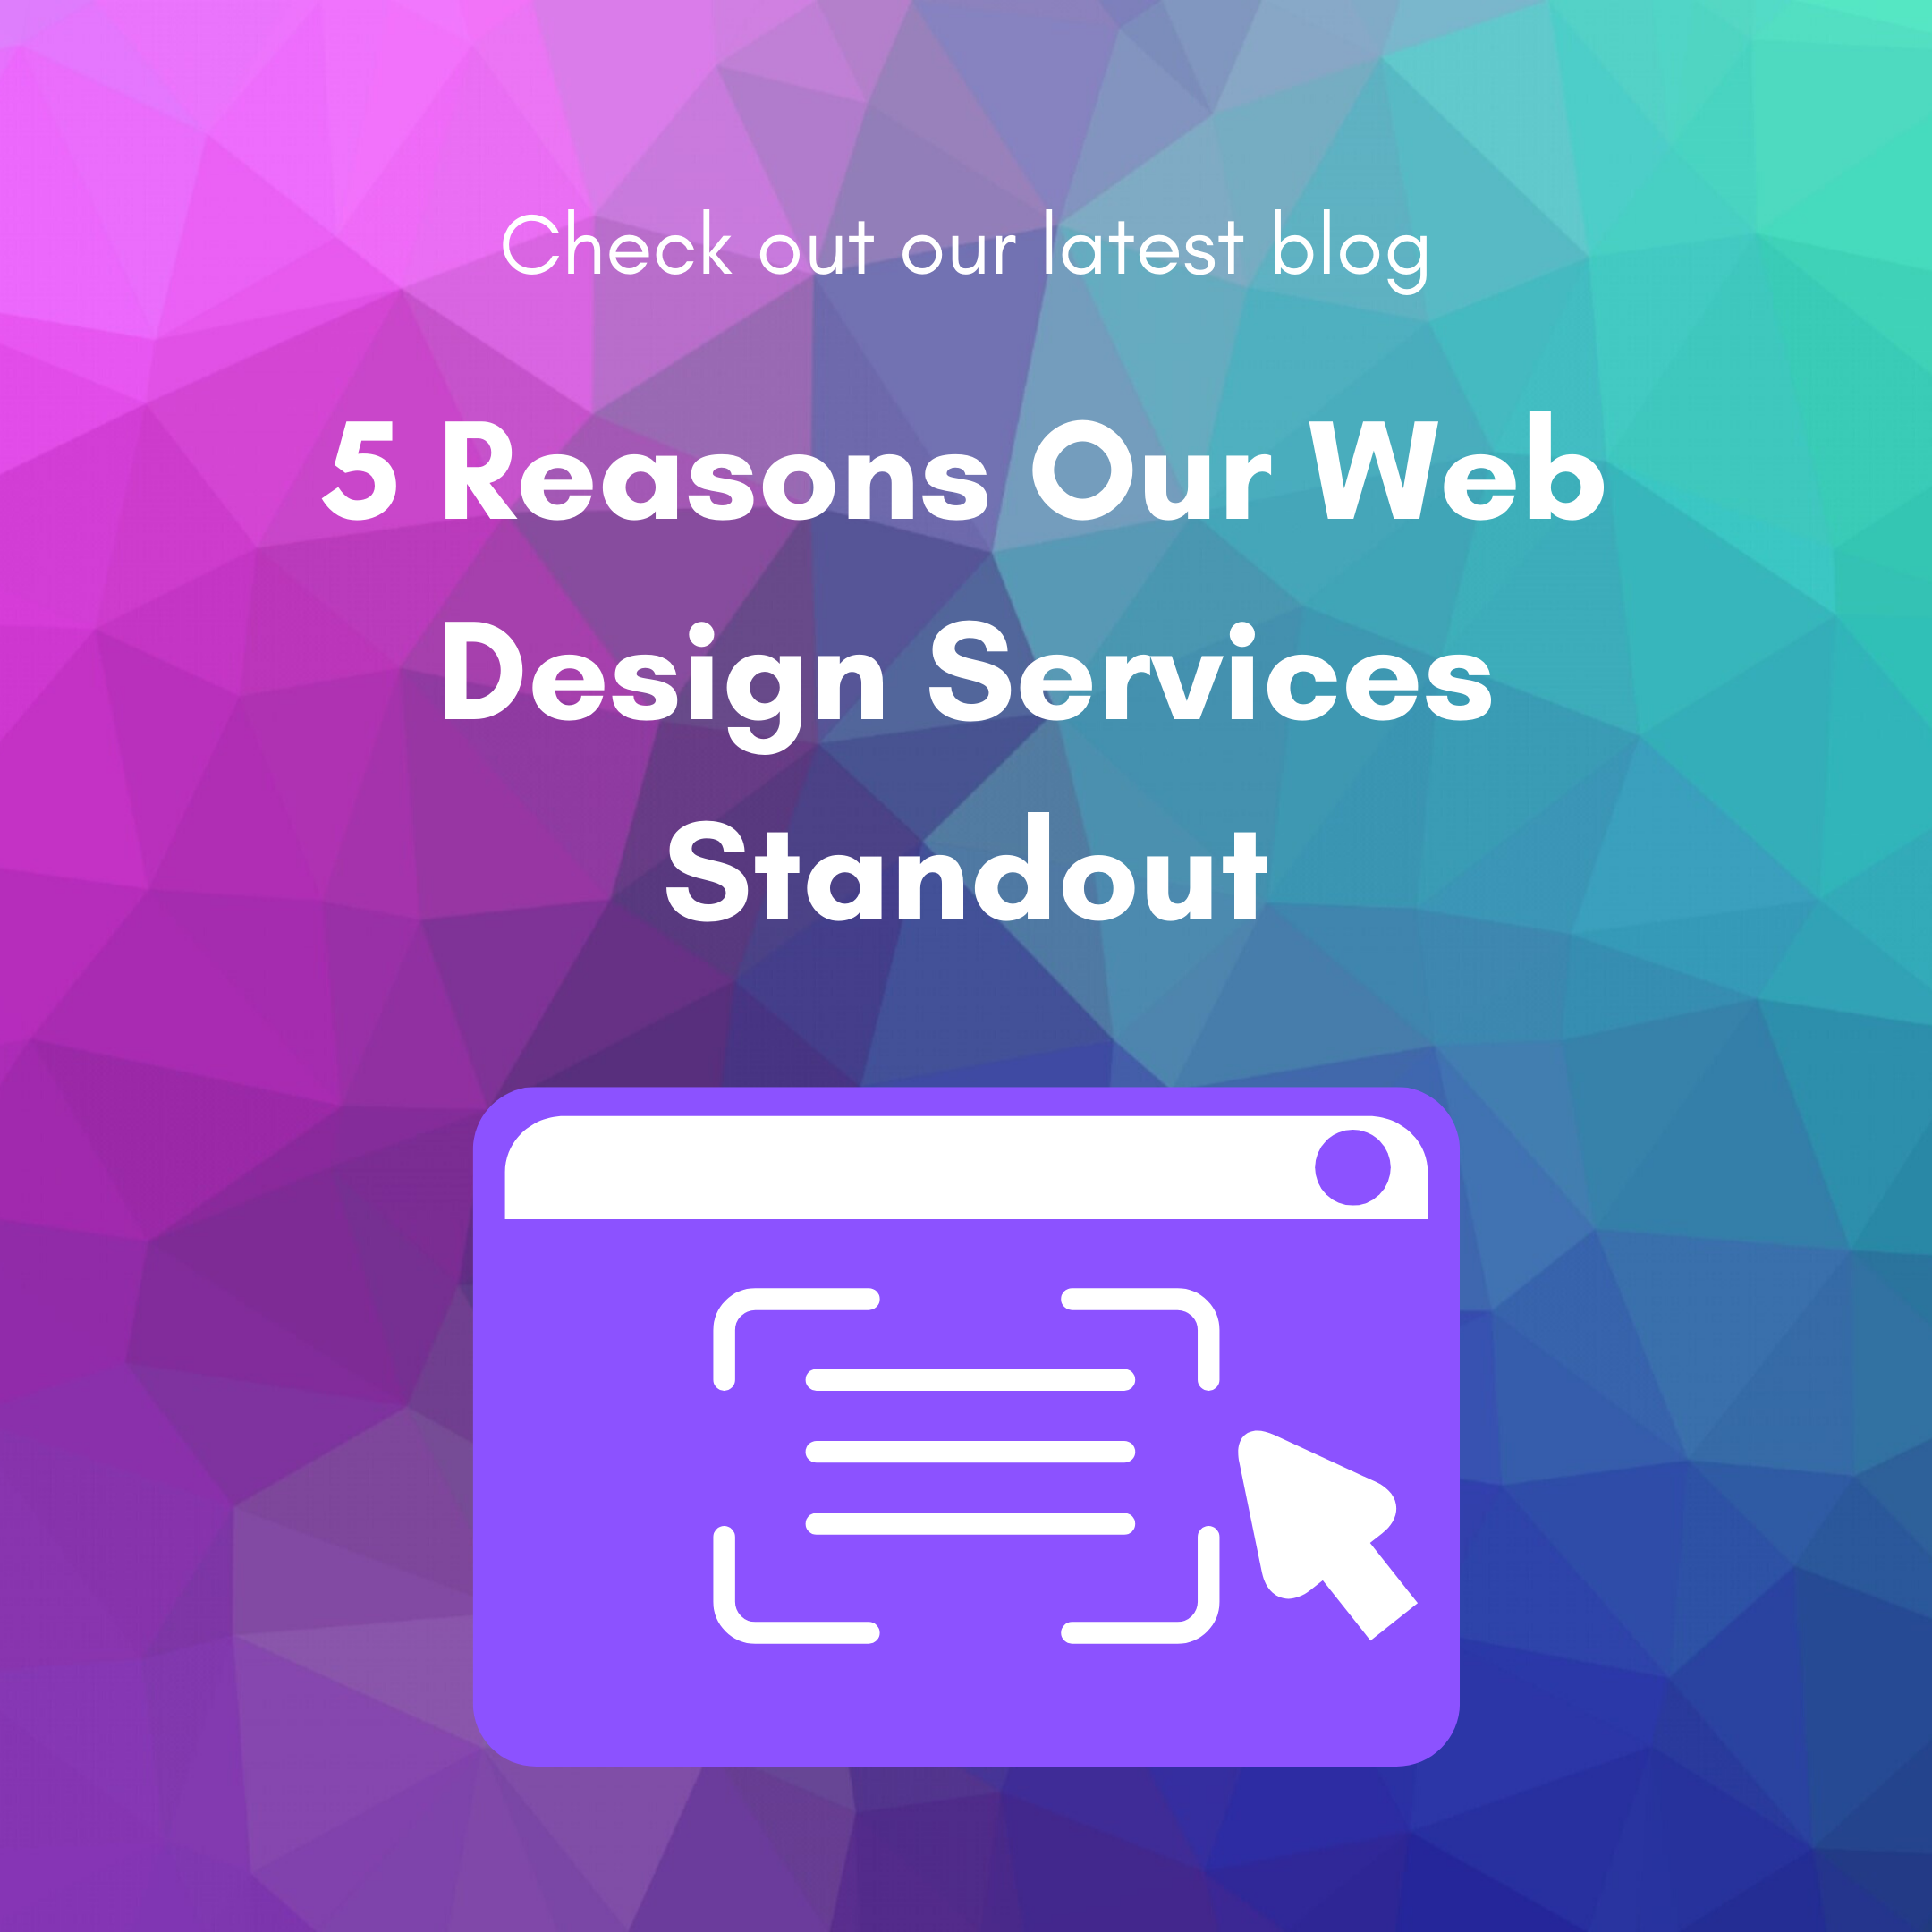 5 Reasons Our Web Design Services Standout